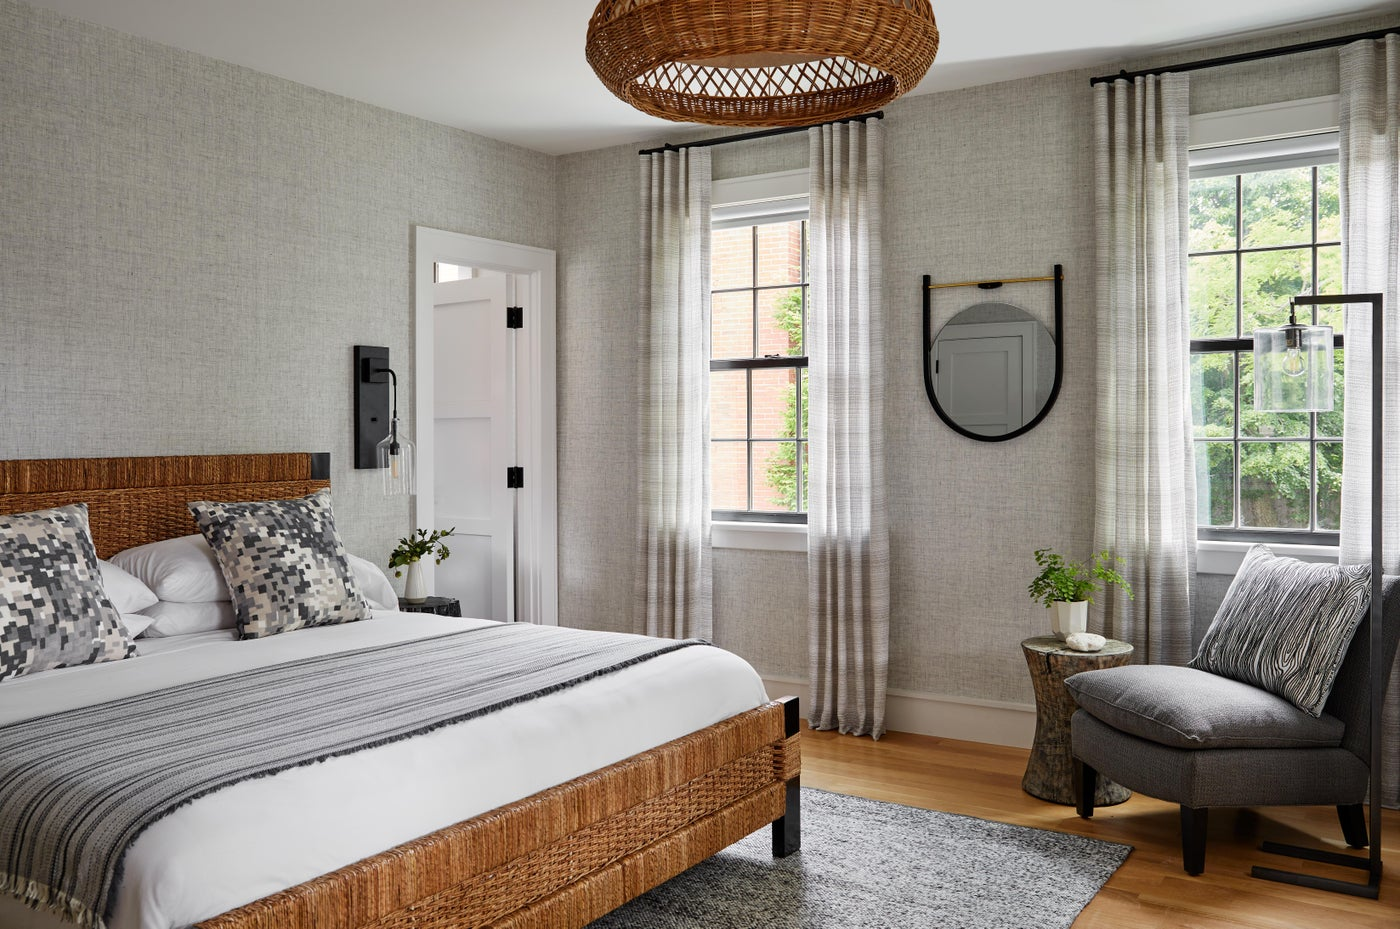 Boutique Hotel Bedroom in neutrals with texture